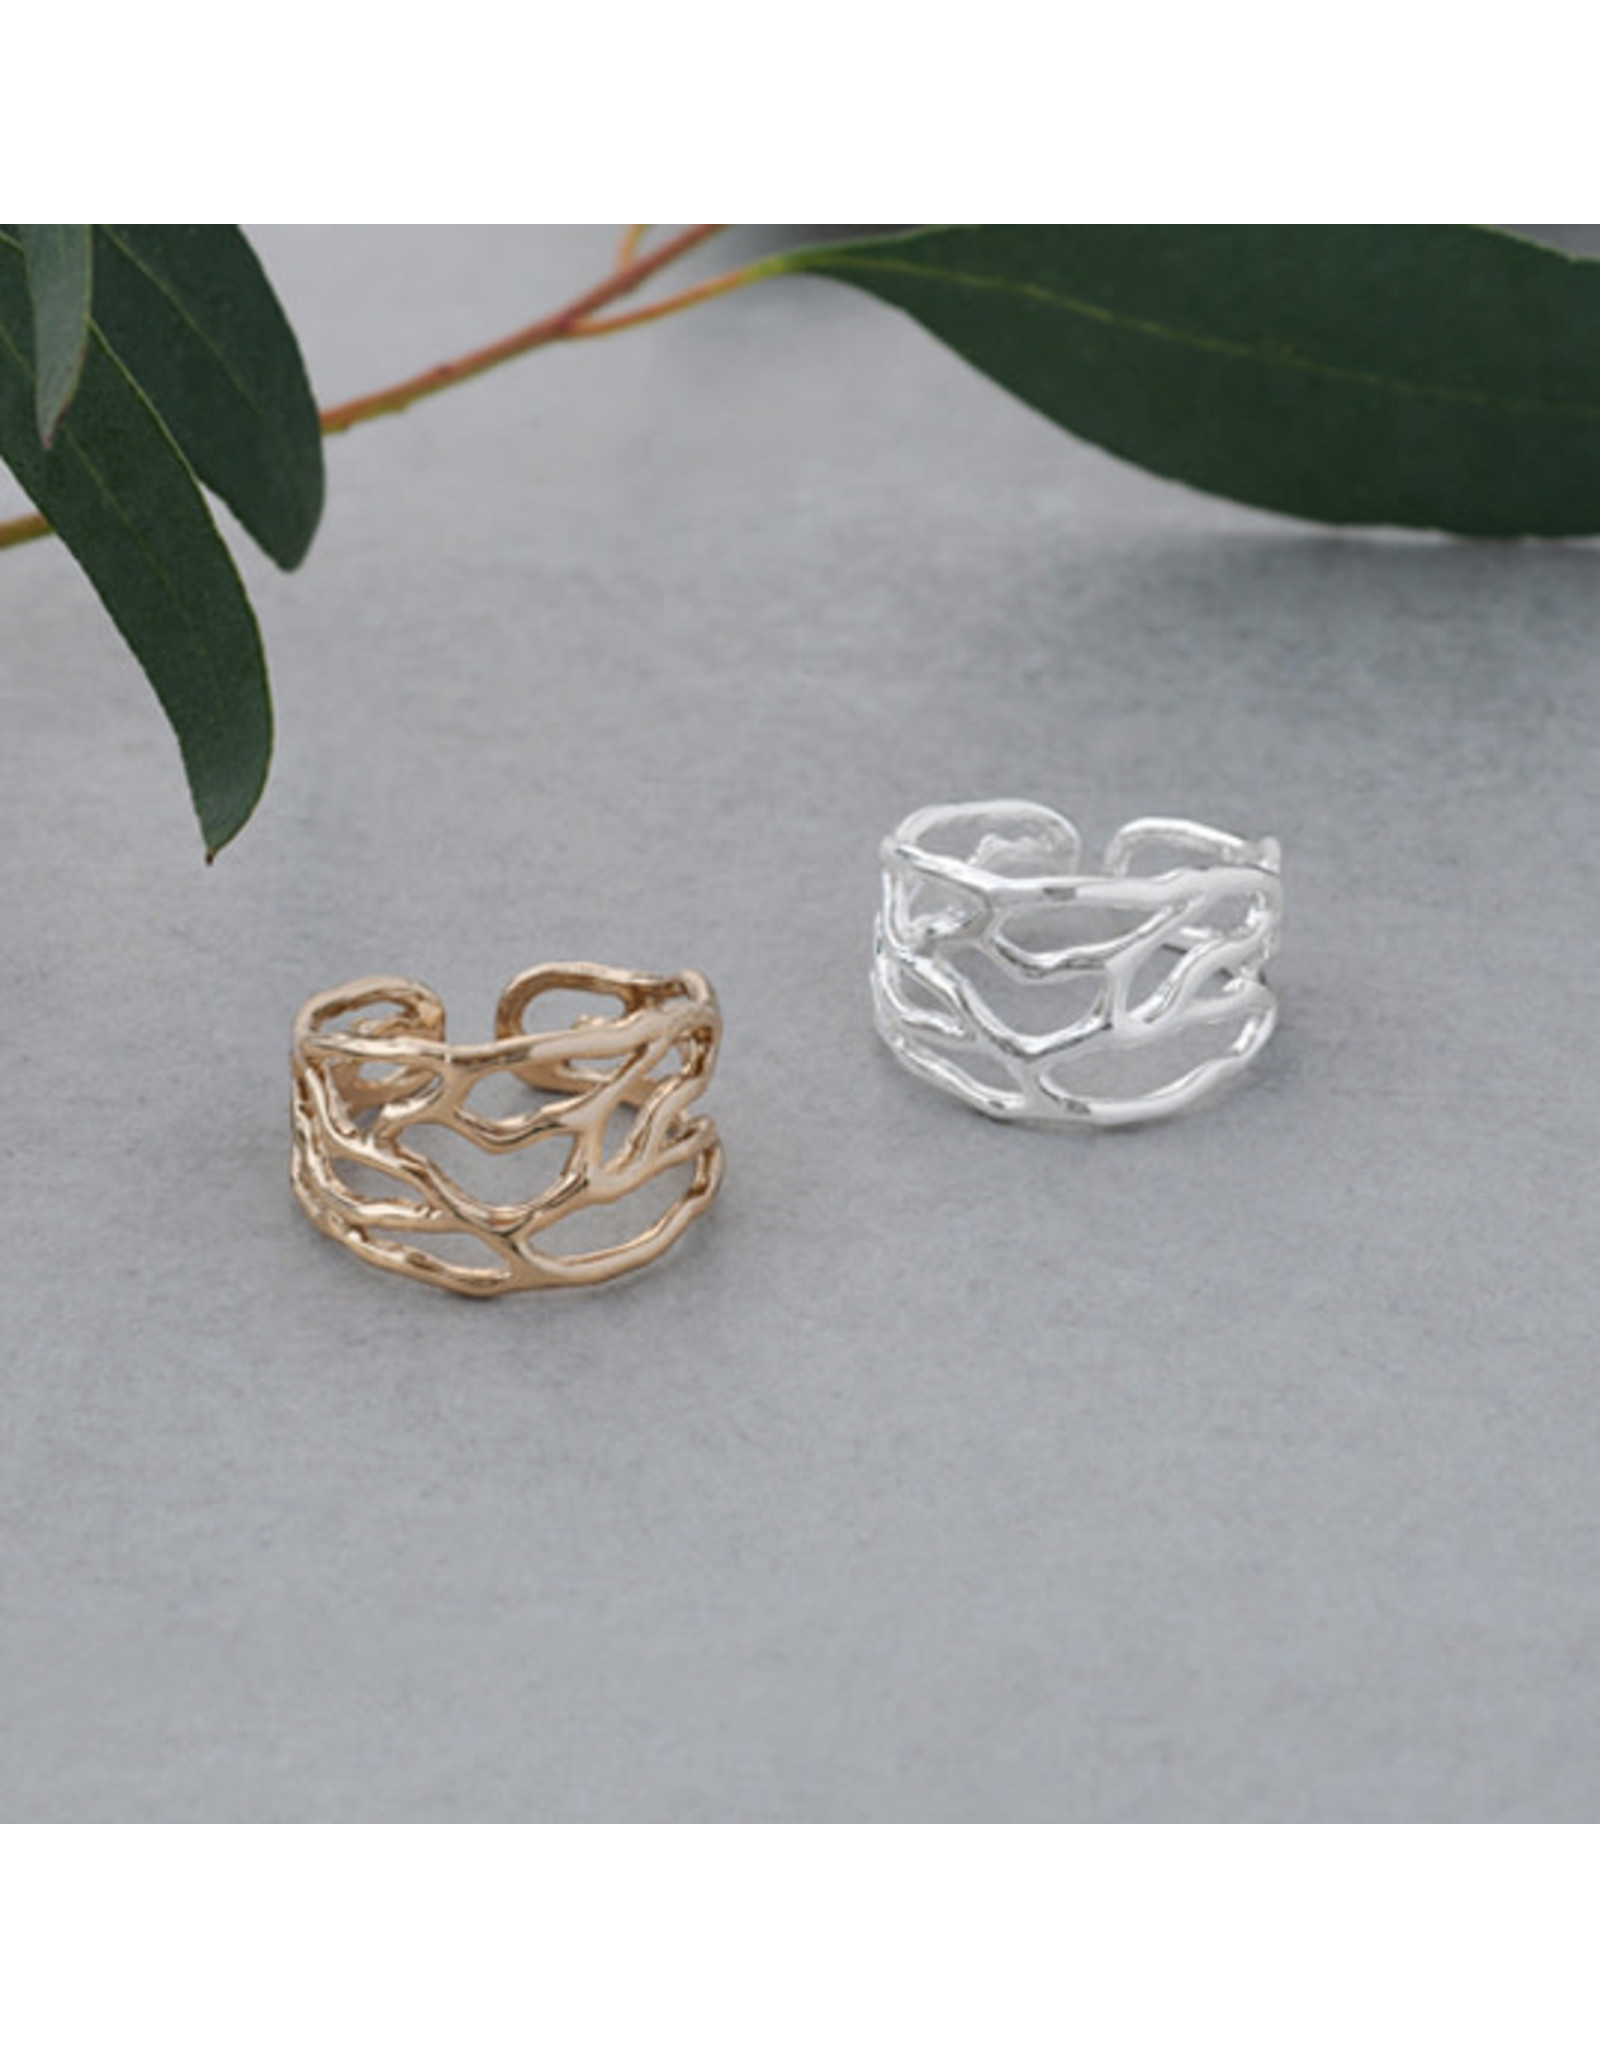 Glee jewelry Intertwined Ring, Sliver